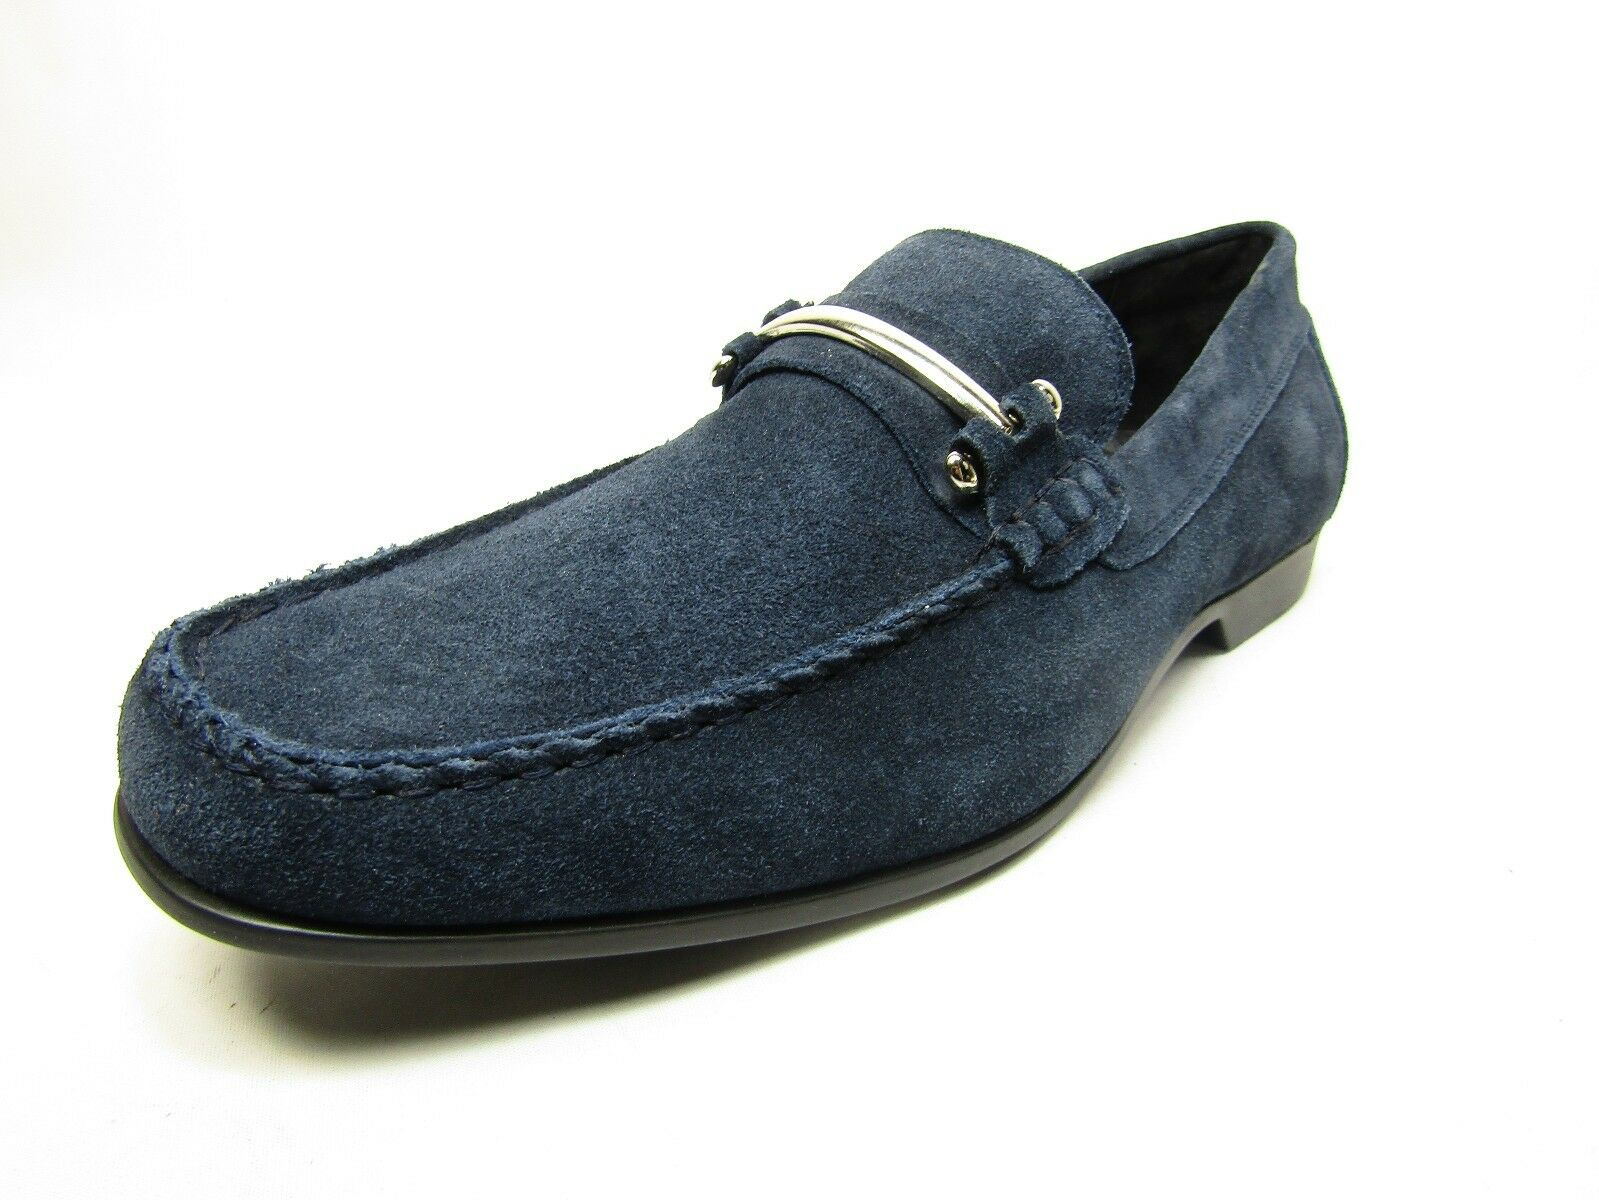 Stacy Adams Eagon Slip-on Loafer Azul Marino para Hombre M